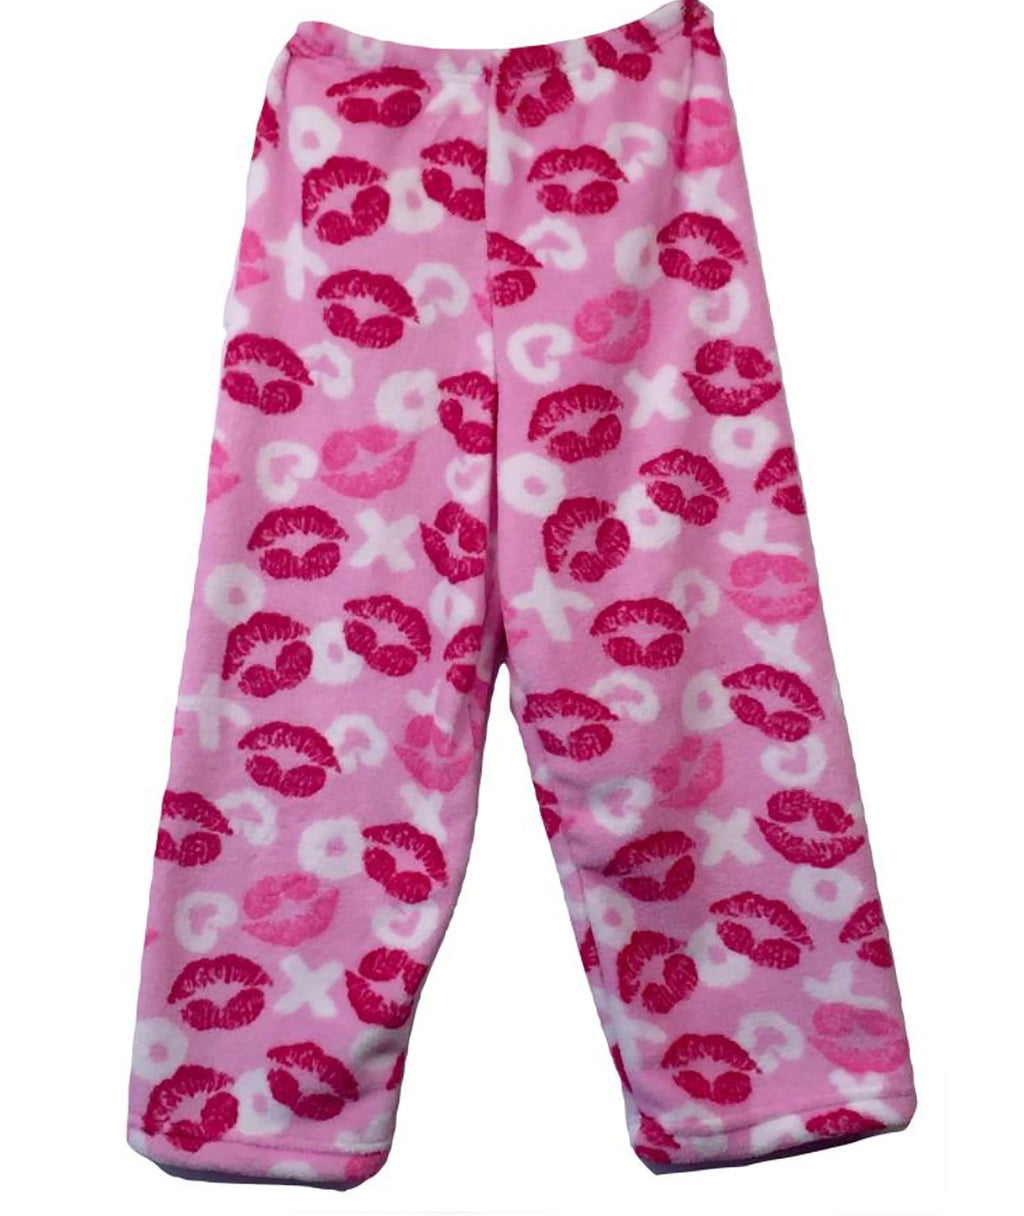 Made with Love and Kisses XO Lips Pajama Pants - Frankie's on the Park